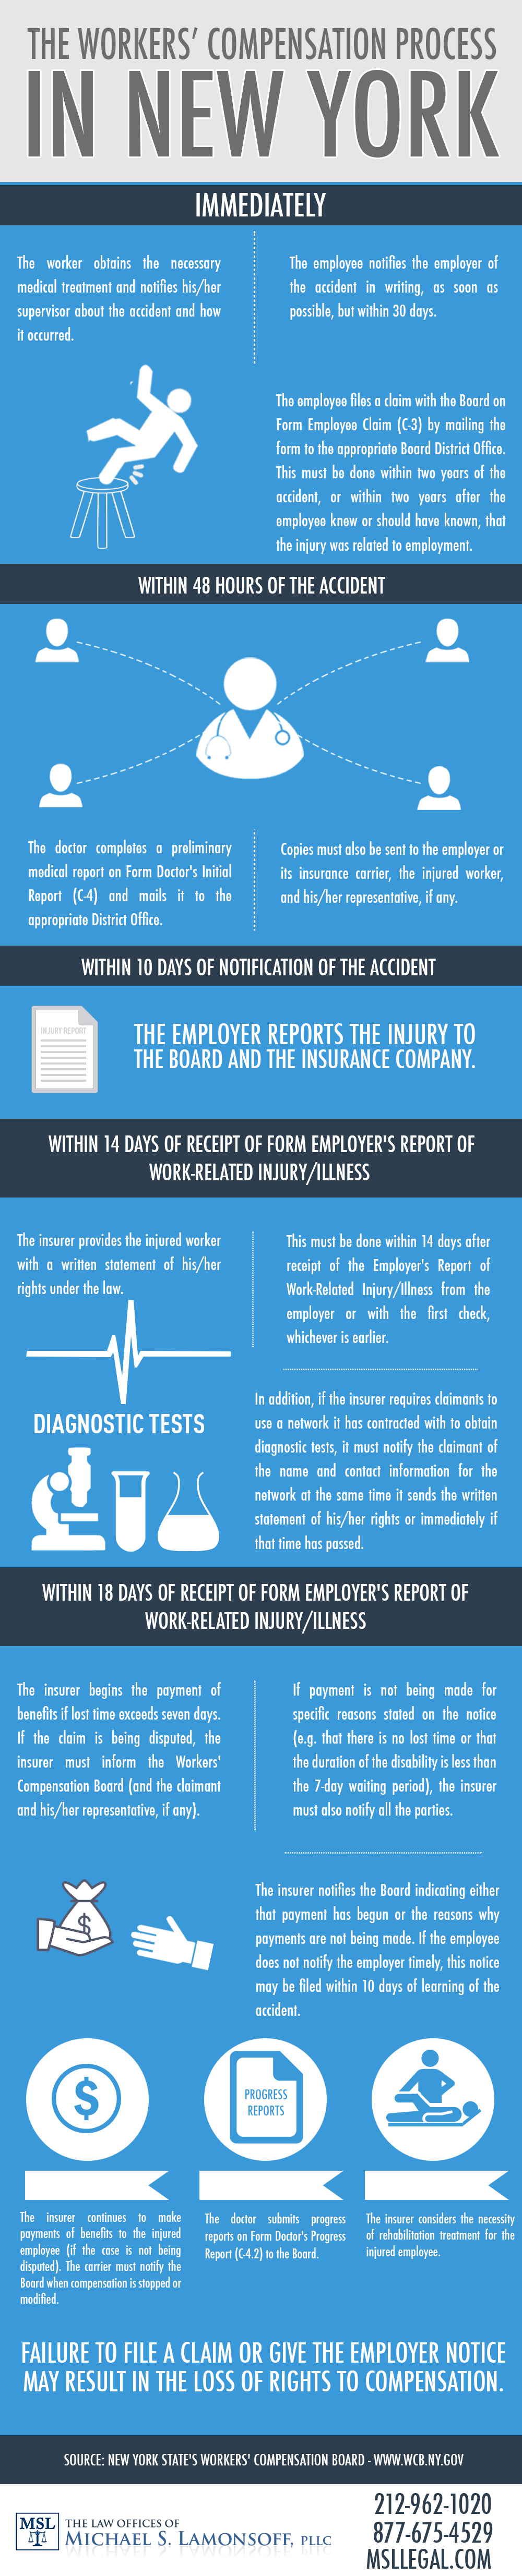 the workers Compensation Process